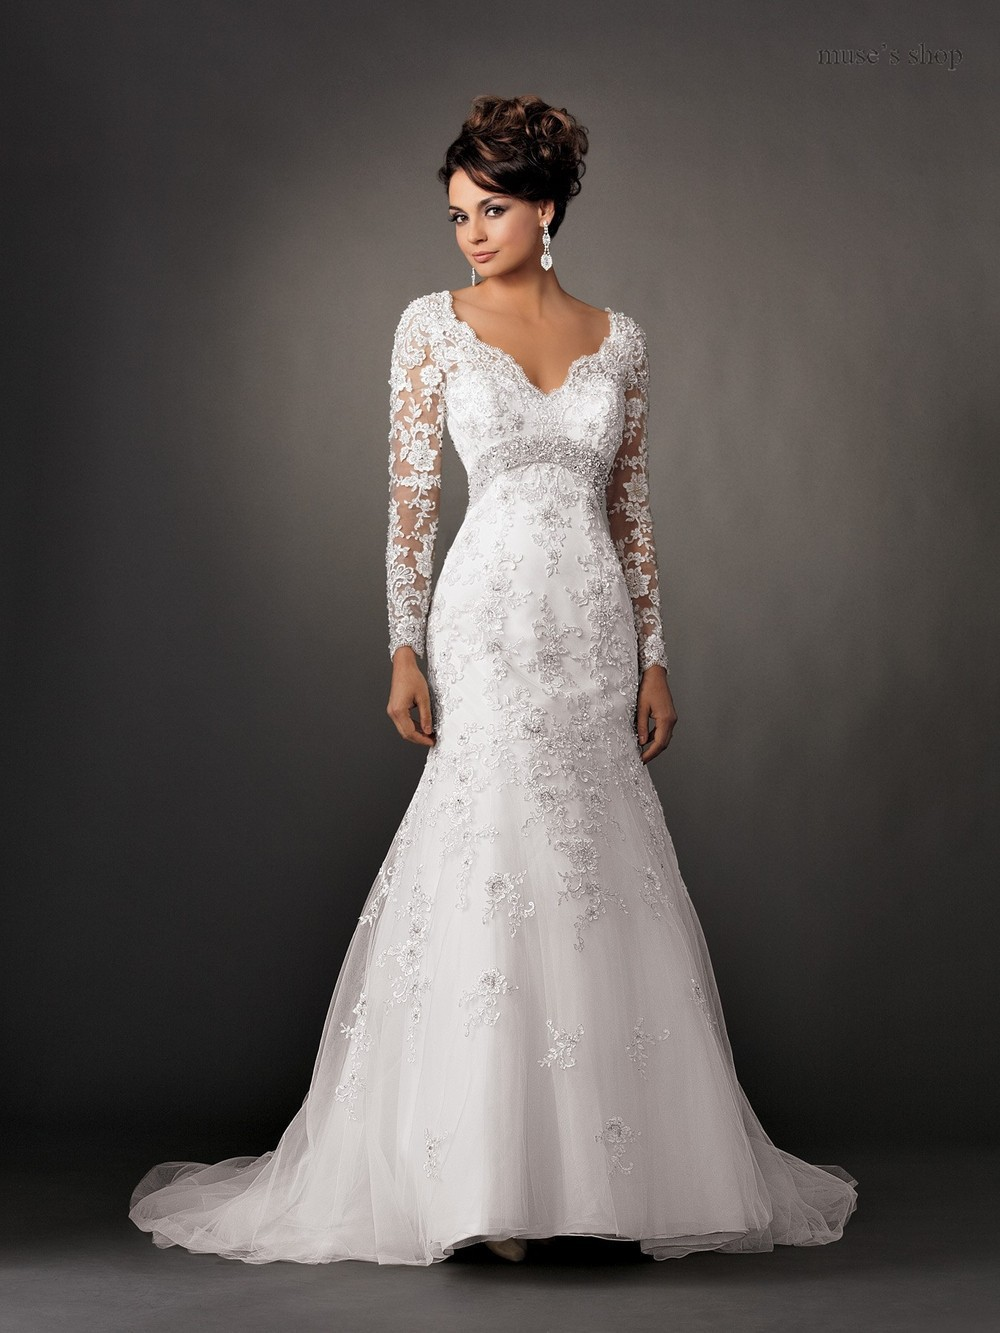 V neck vintage long sleeve lace wedding dresses backless for No back wedding dress